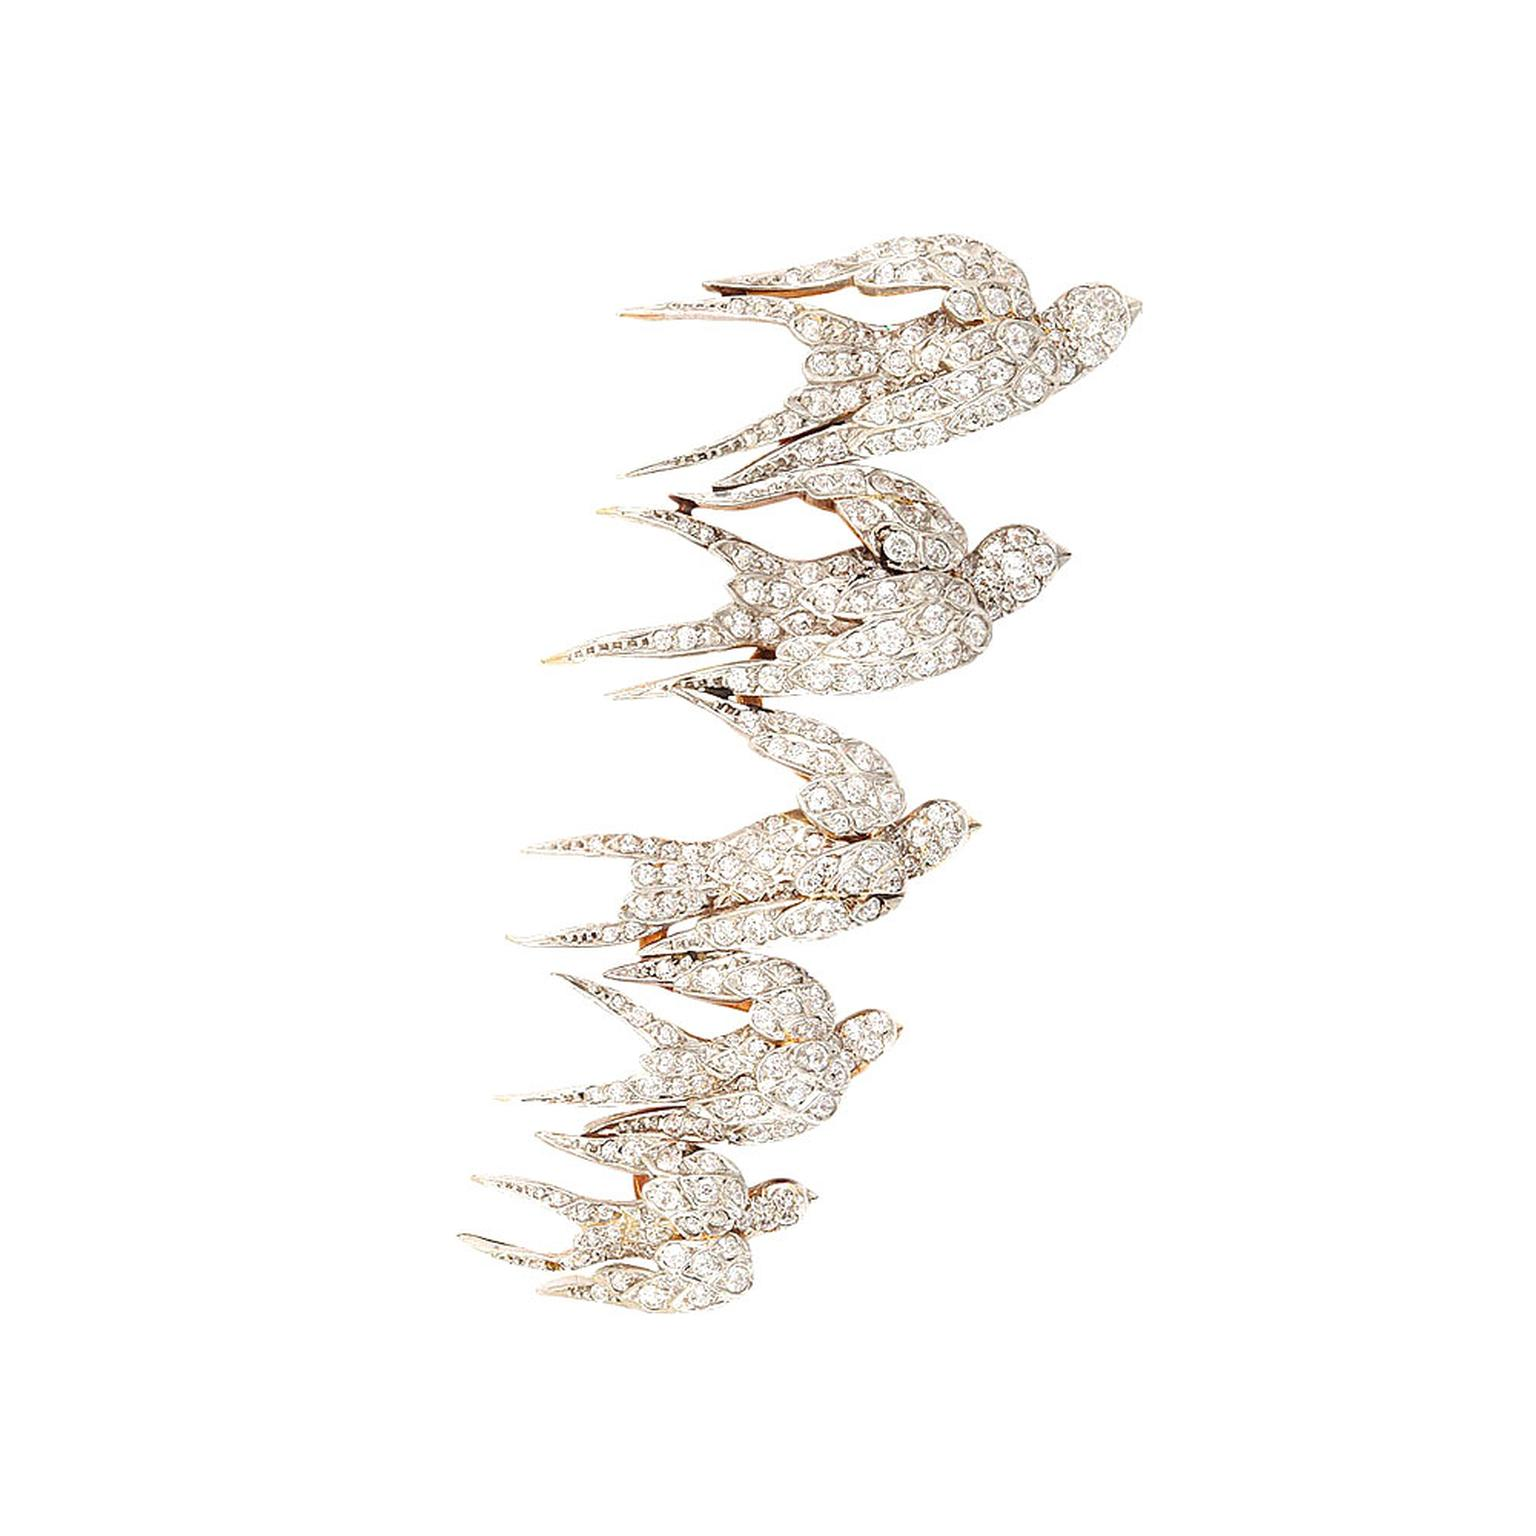 A La Vieille Russie swallow brooch